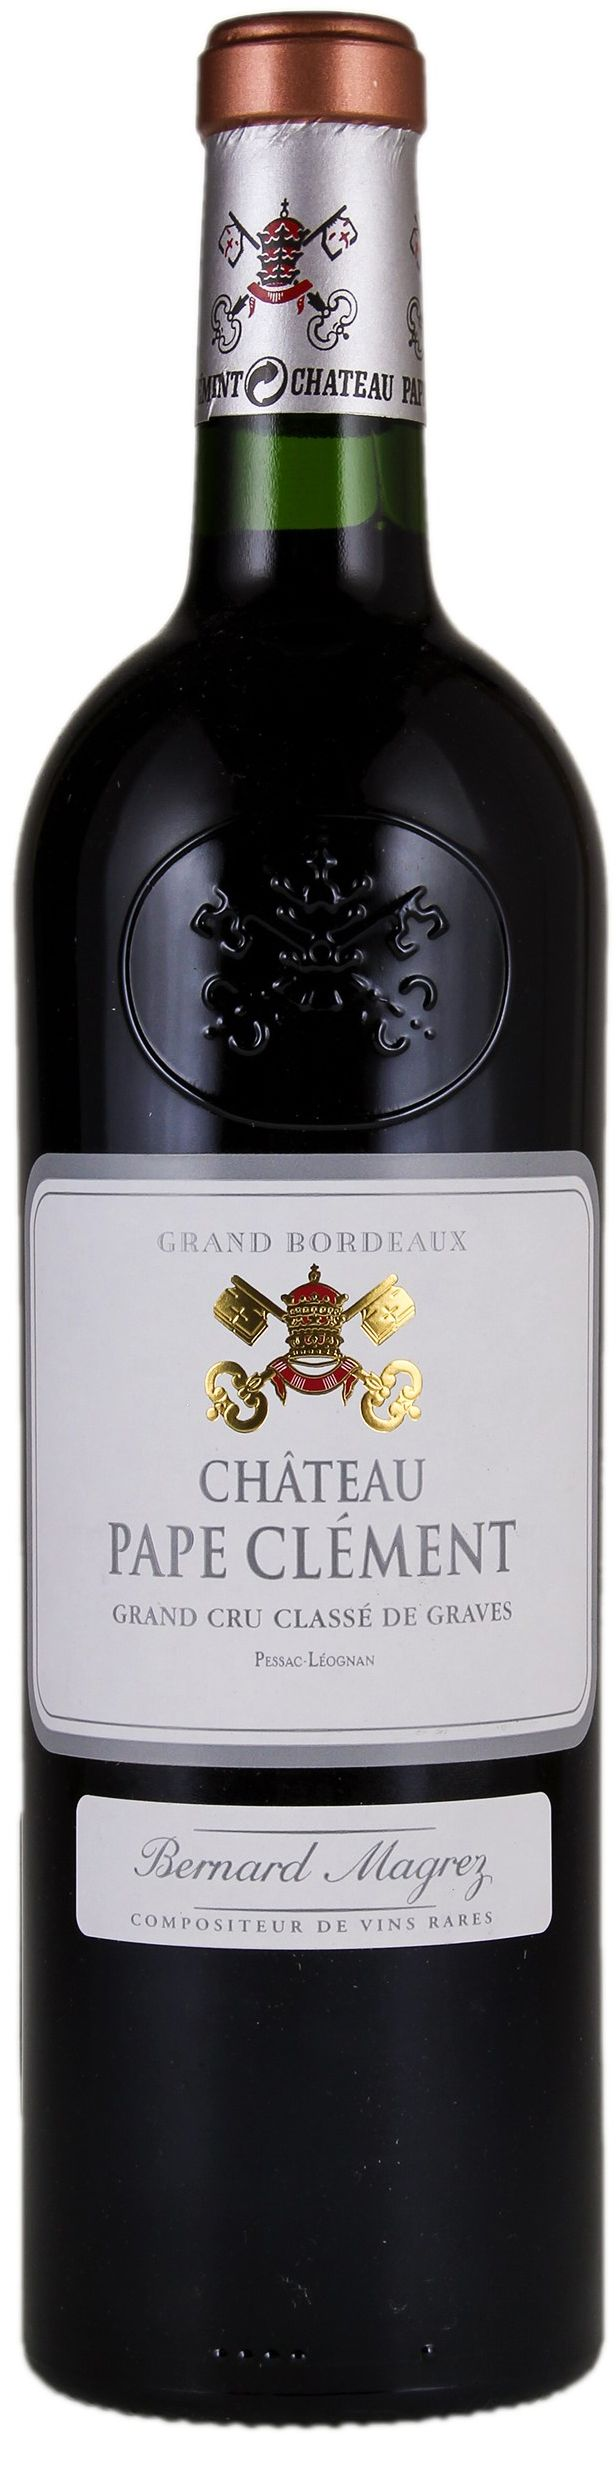 Chateau Pape Clement, Rouge Grand Cru Classe De Graves, 2010